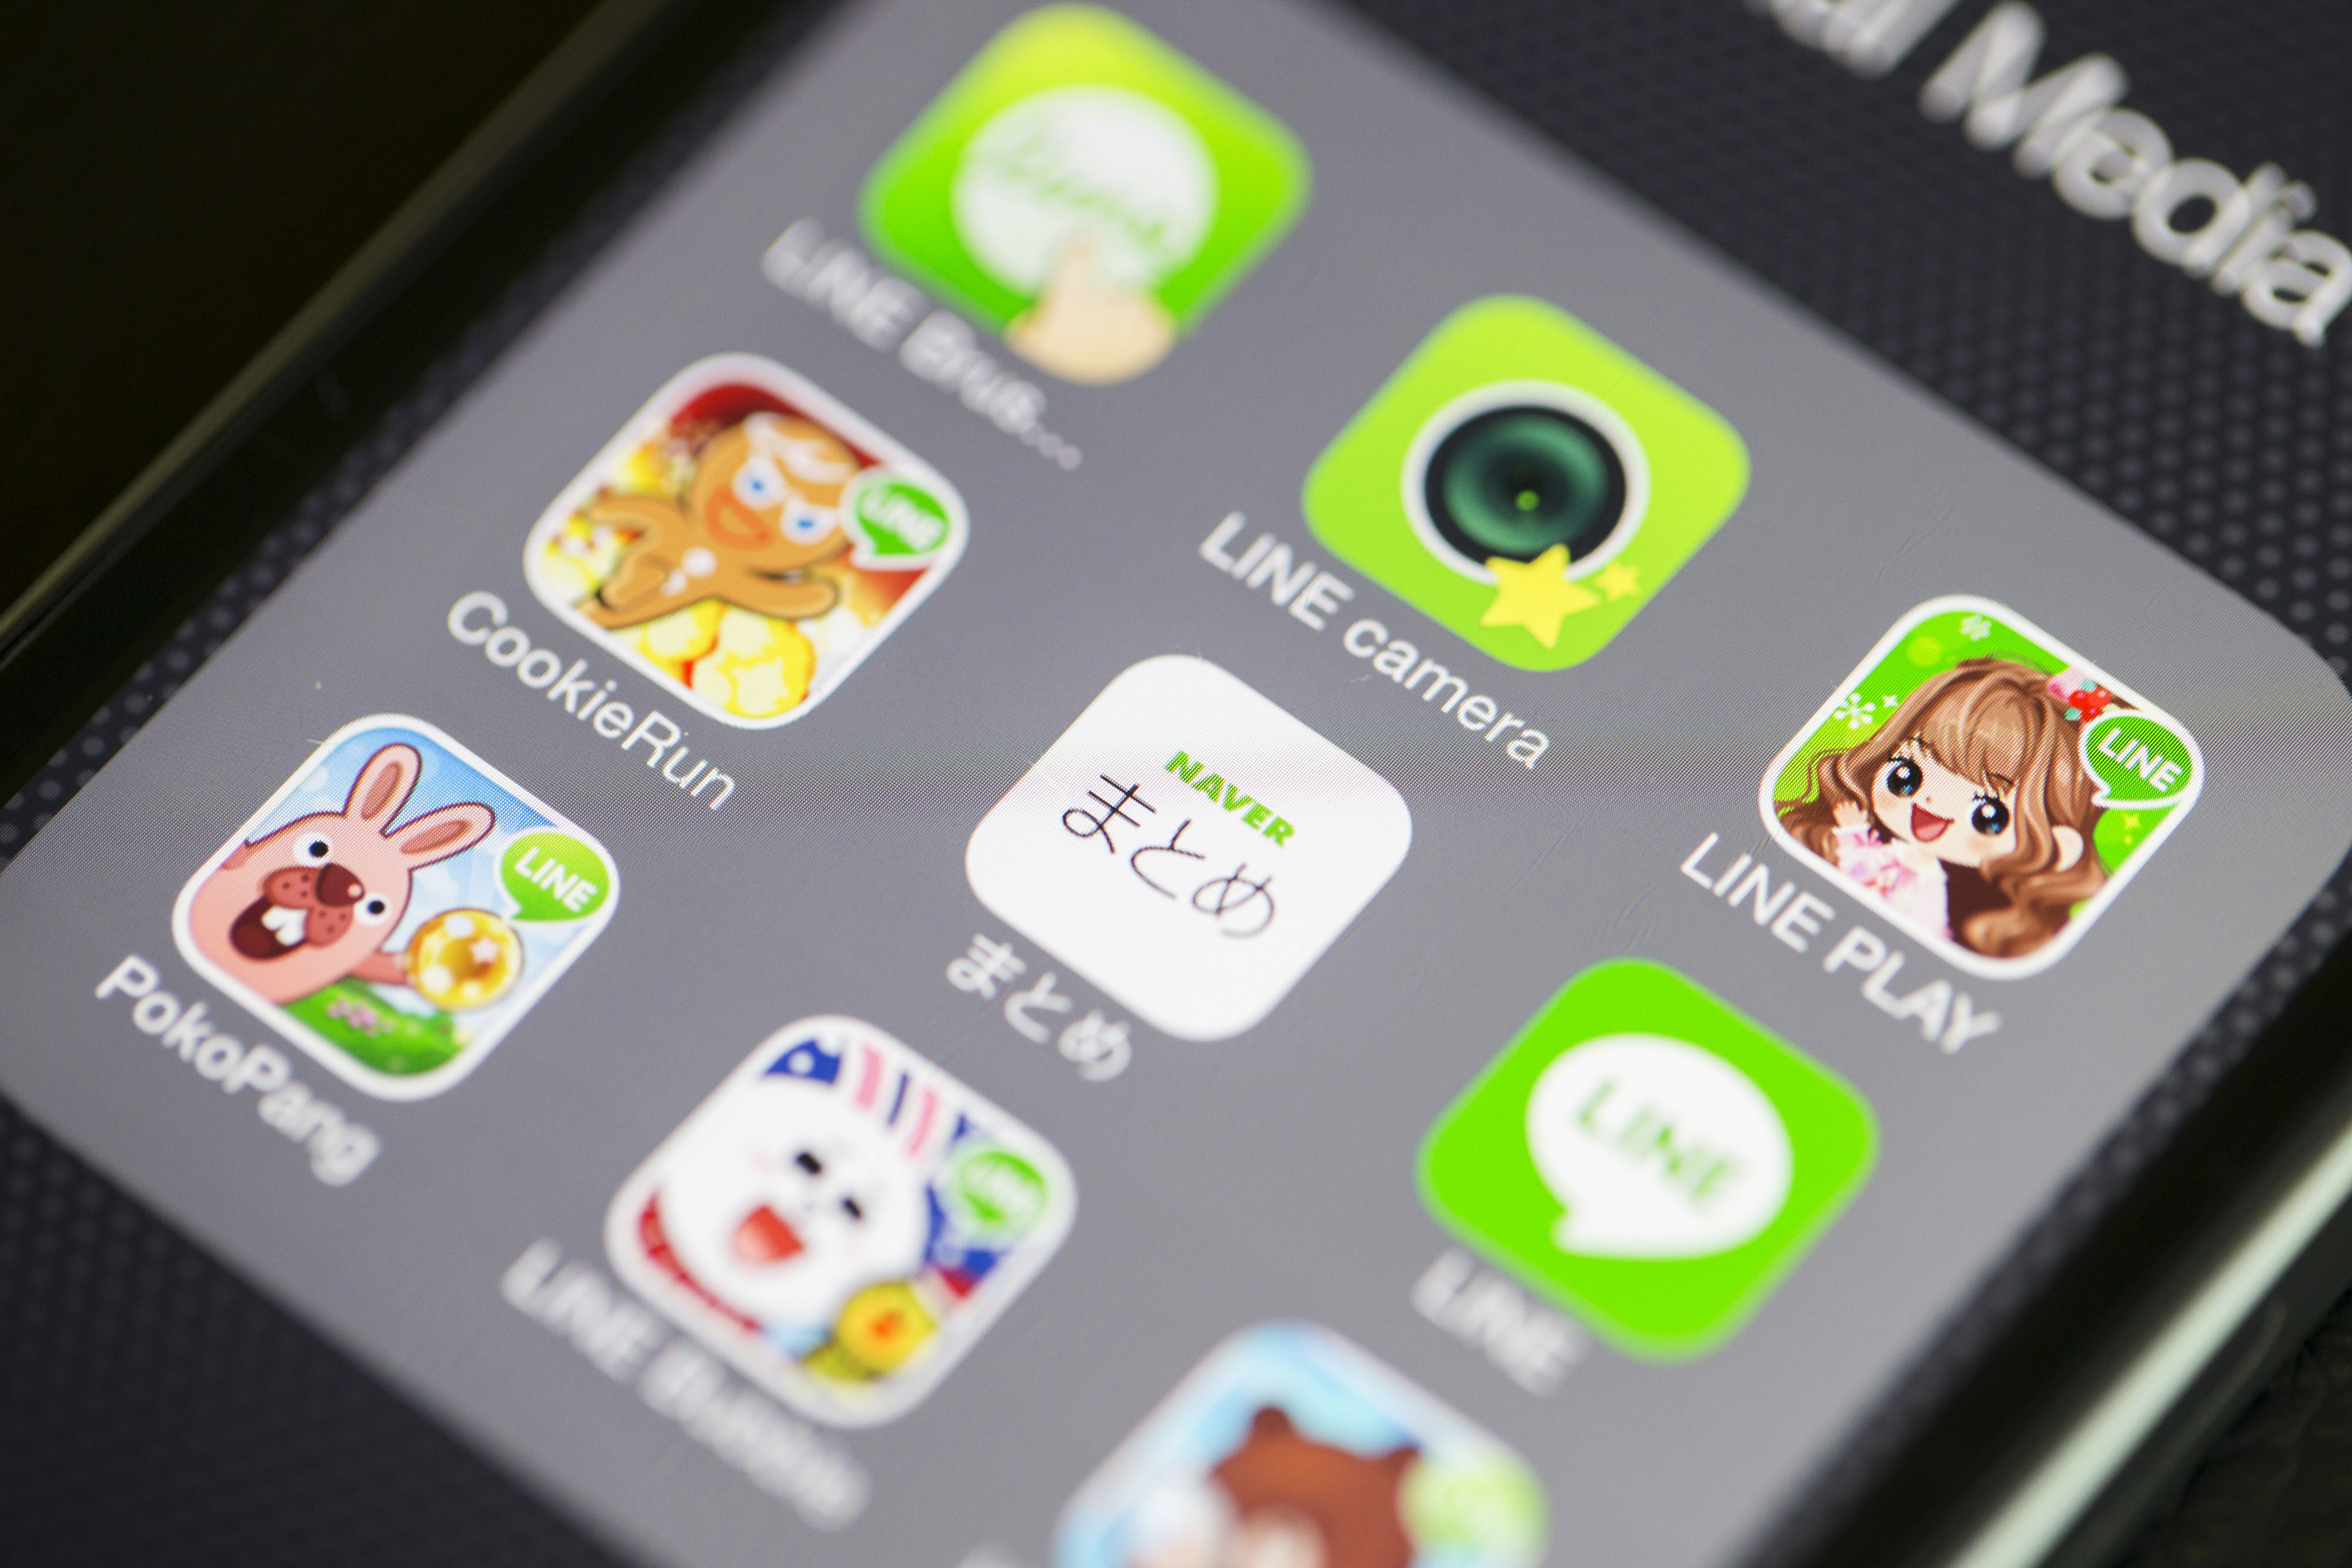 Application icons for Line Corp.'s internet messaging and calling service, controlled by Naver Corp., are displayed on an Apple Inc. iPhone 5s in an arranged photograph in Hong Kong, China, on Tuesday, Feb. 25, 2014. SoftBank Corp. is seeking to buy a stake in Line, people with knowledge of the matter said. Photographer: Brent Lewin/Bloomberg